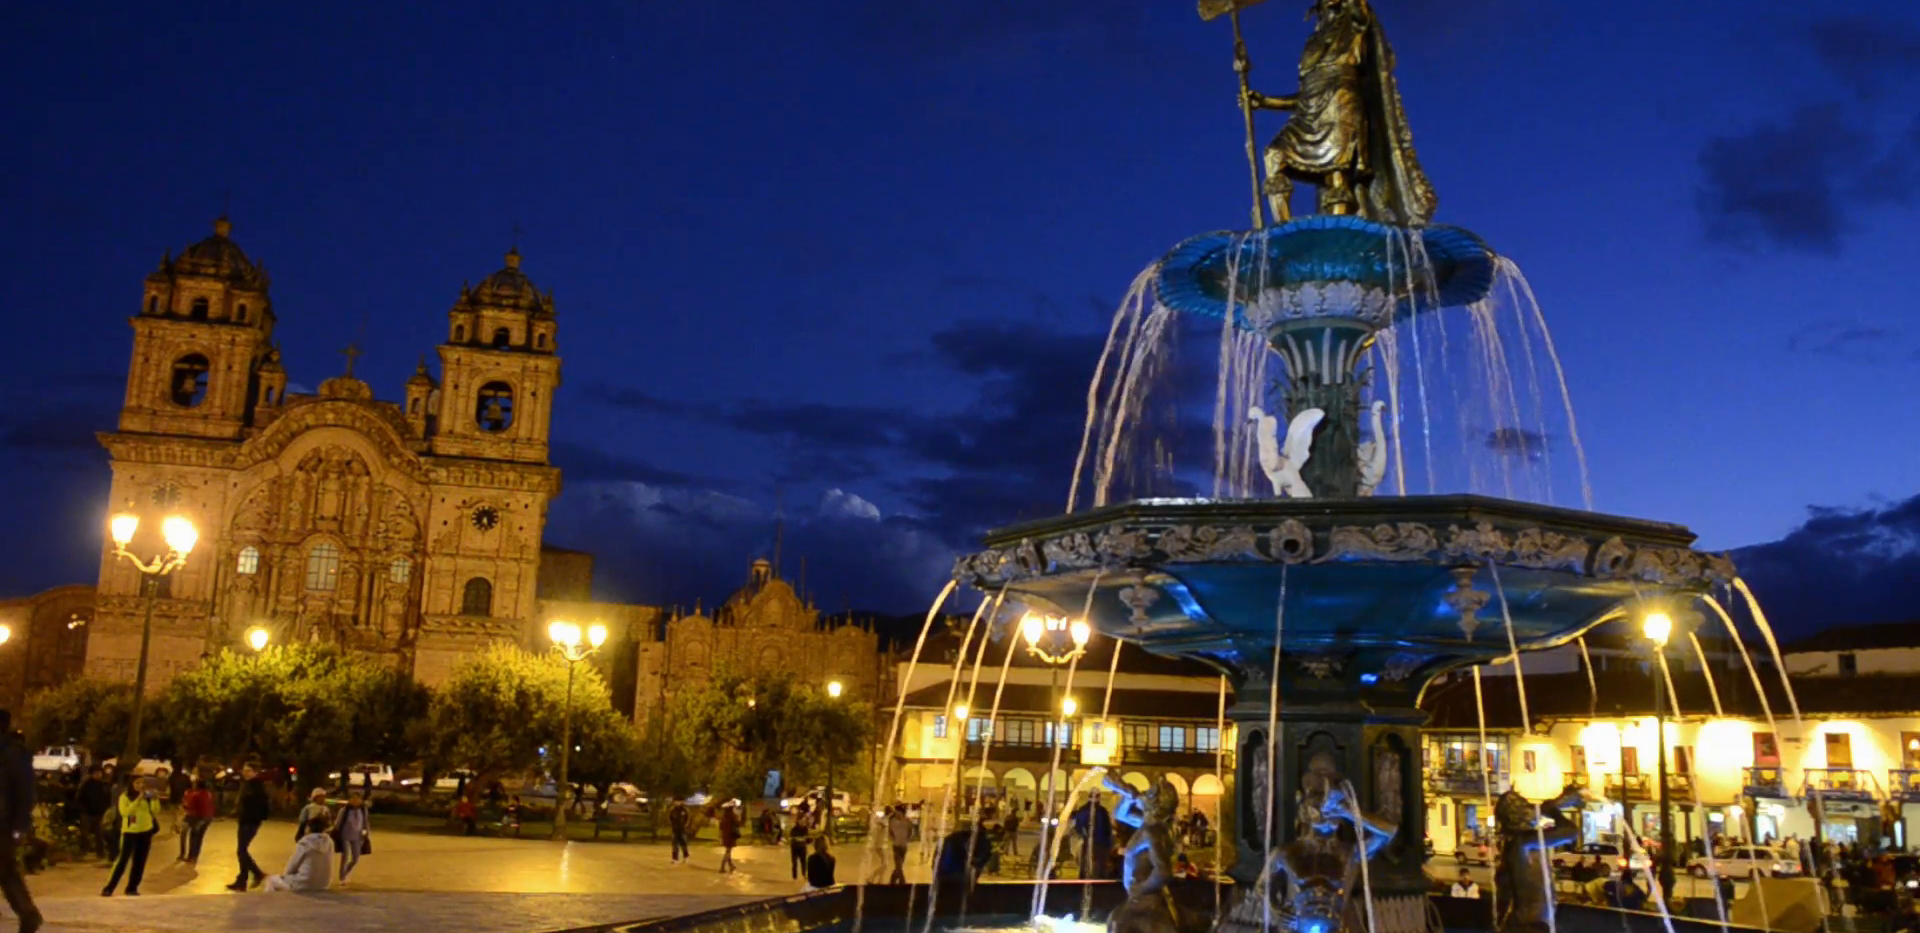 cusco-fountain at night.png